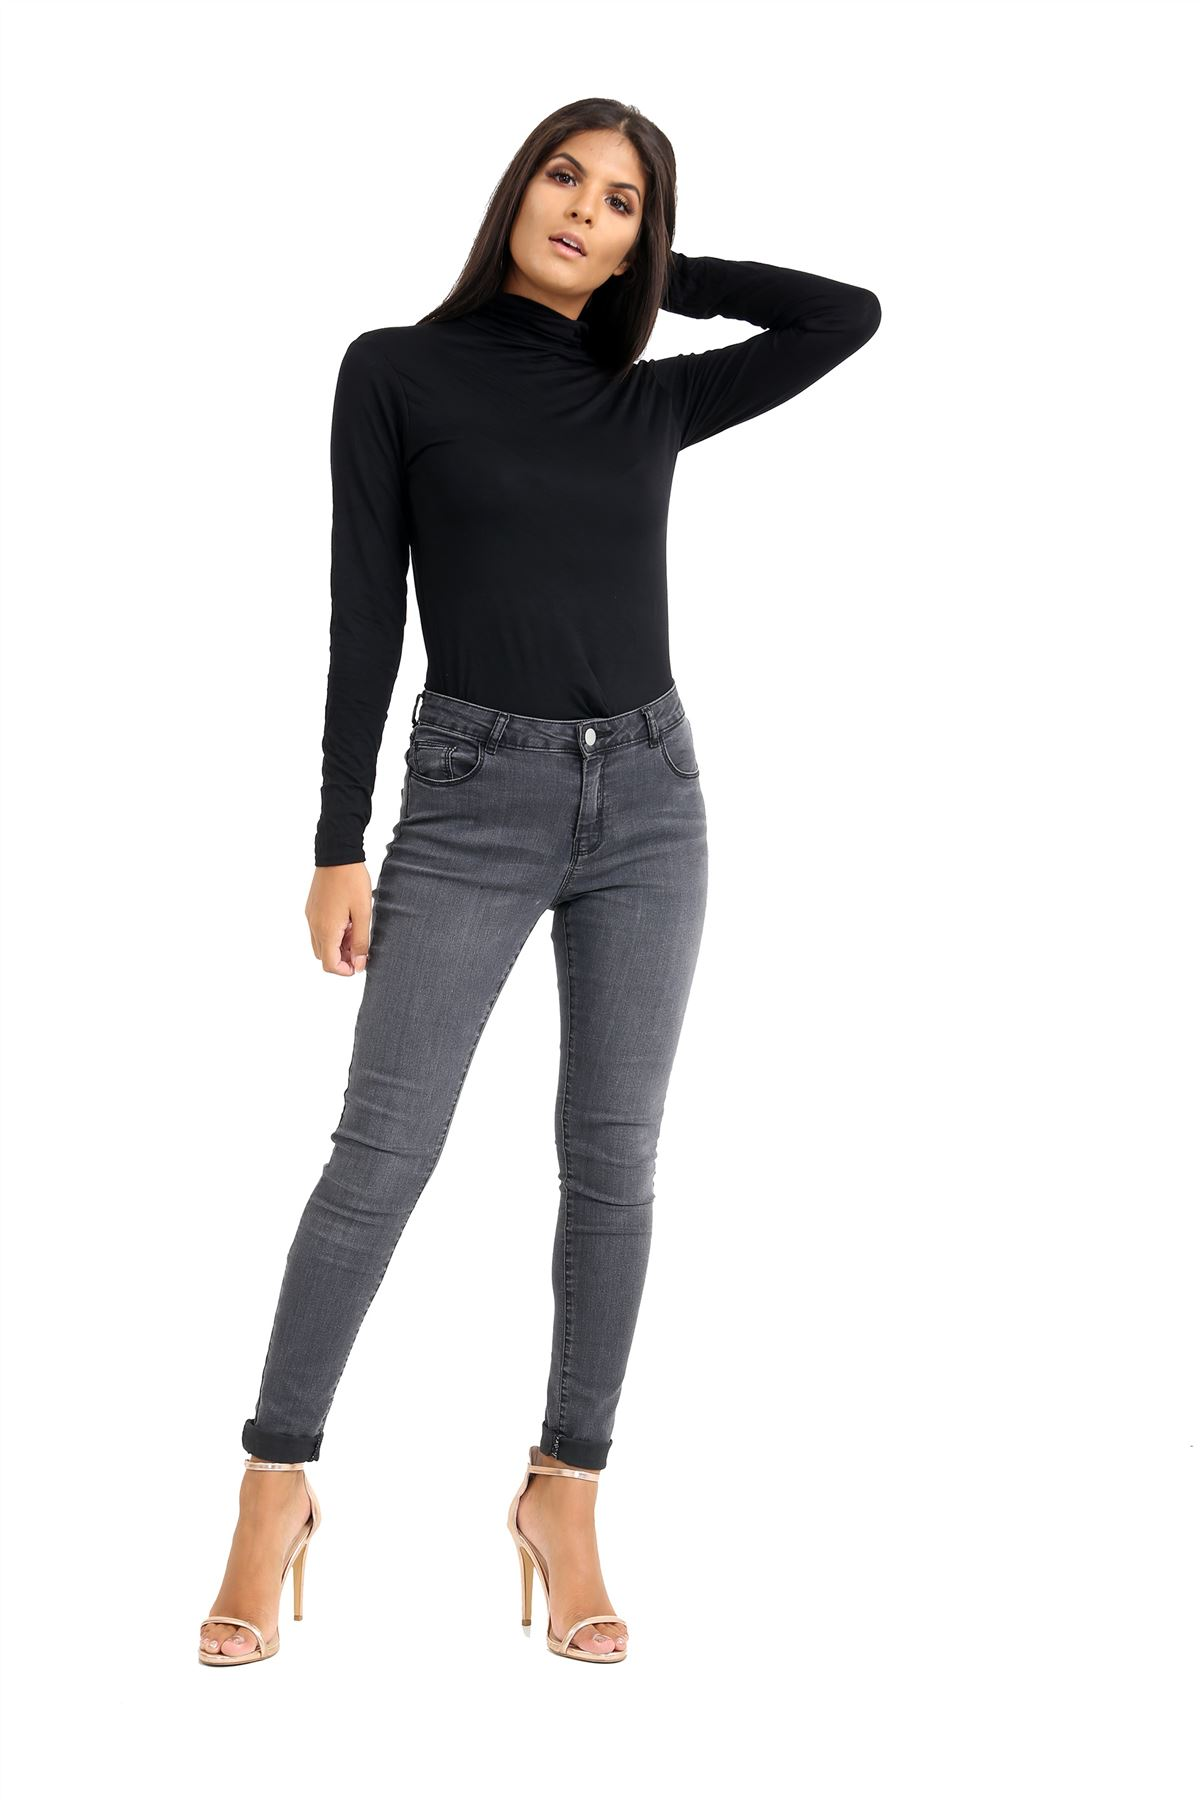 New-Ladies-Long-Sleeve-Plain-Turtle-Polo-Roll-Neck-Stretch-Jumper-T-Shirt-TeeTop thumbnail 15